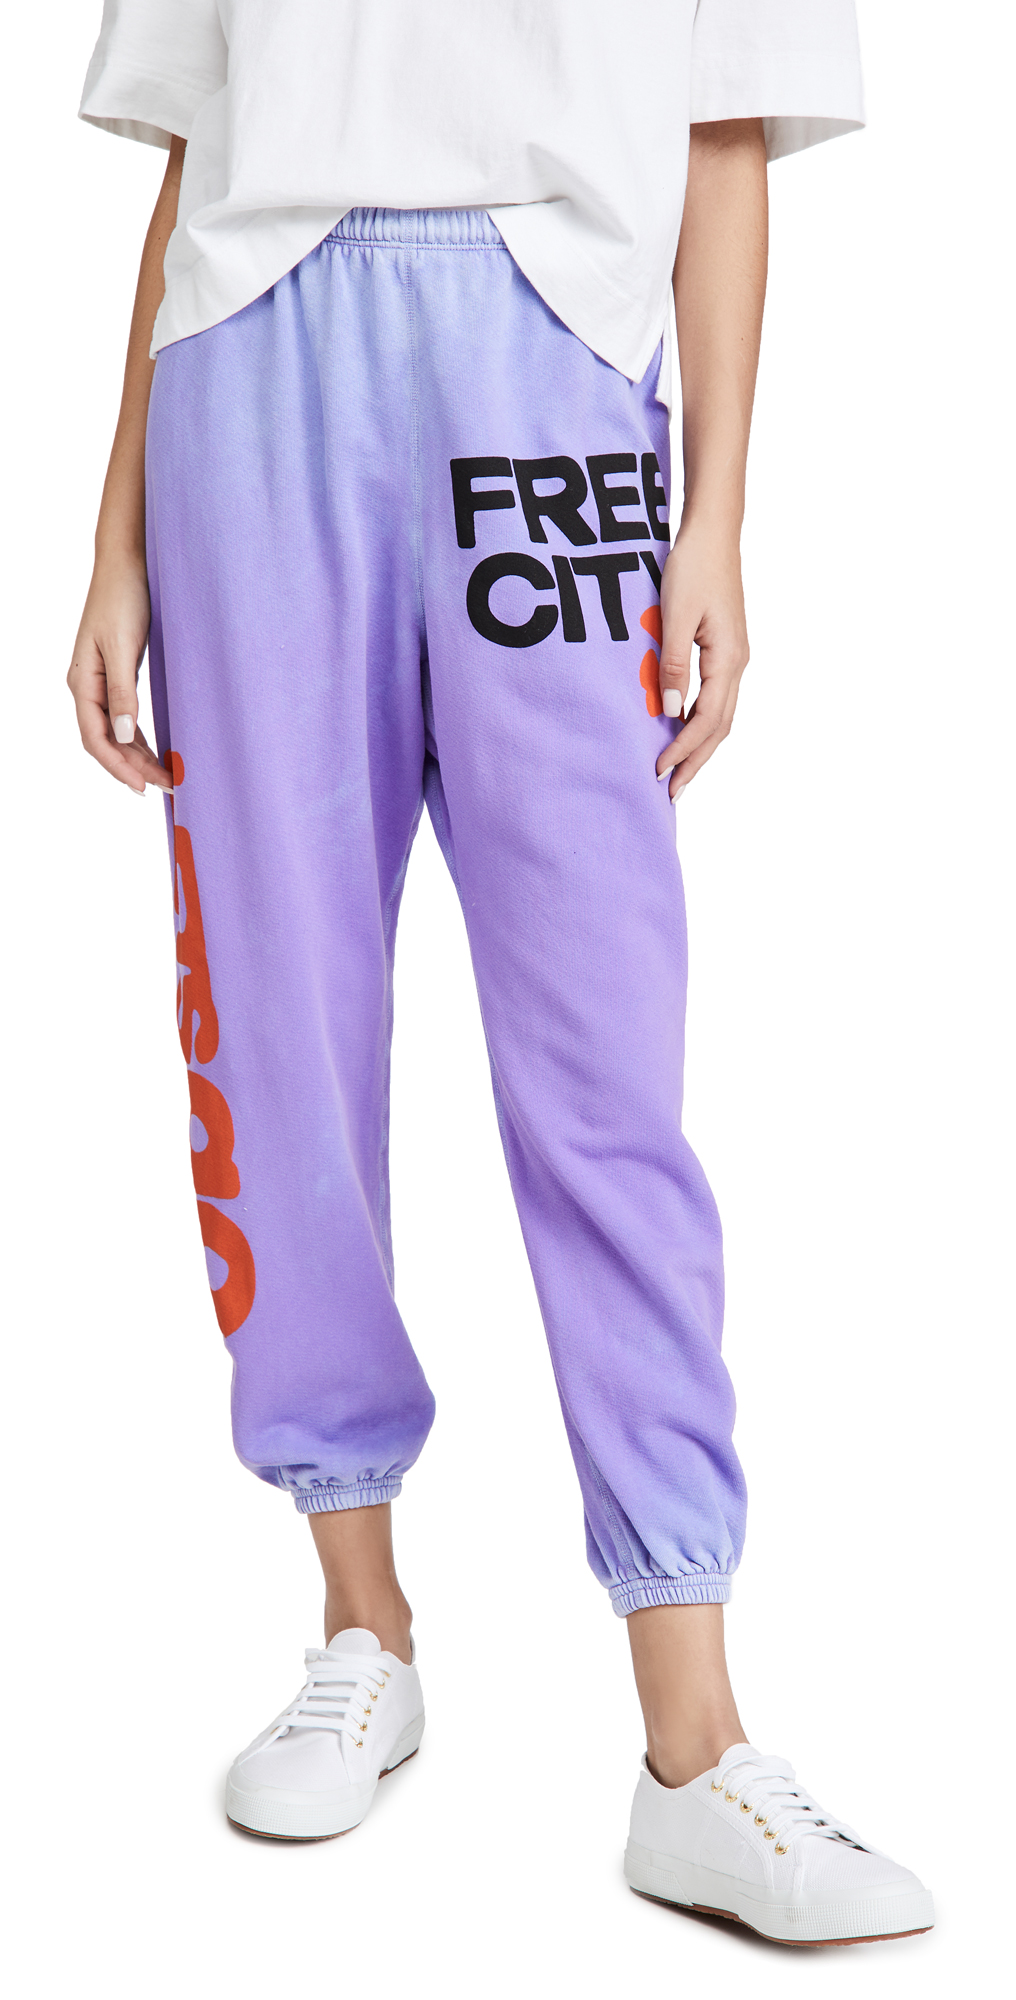 FREECITY Lets Go Free City Super Vintage Sweatpants